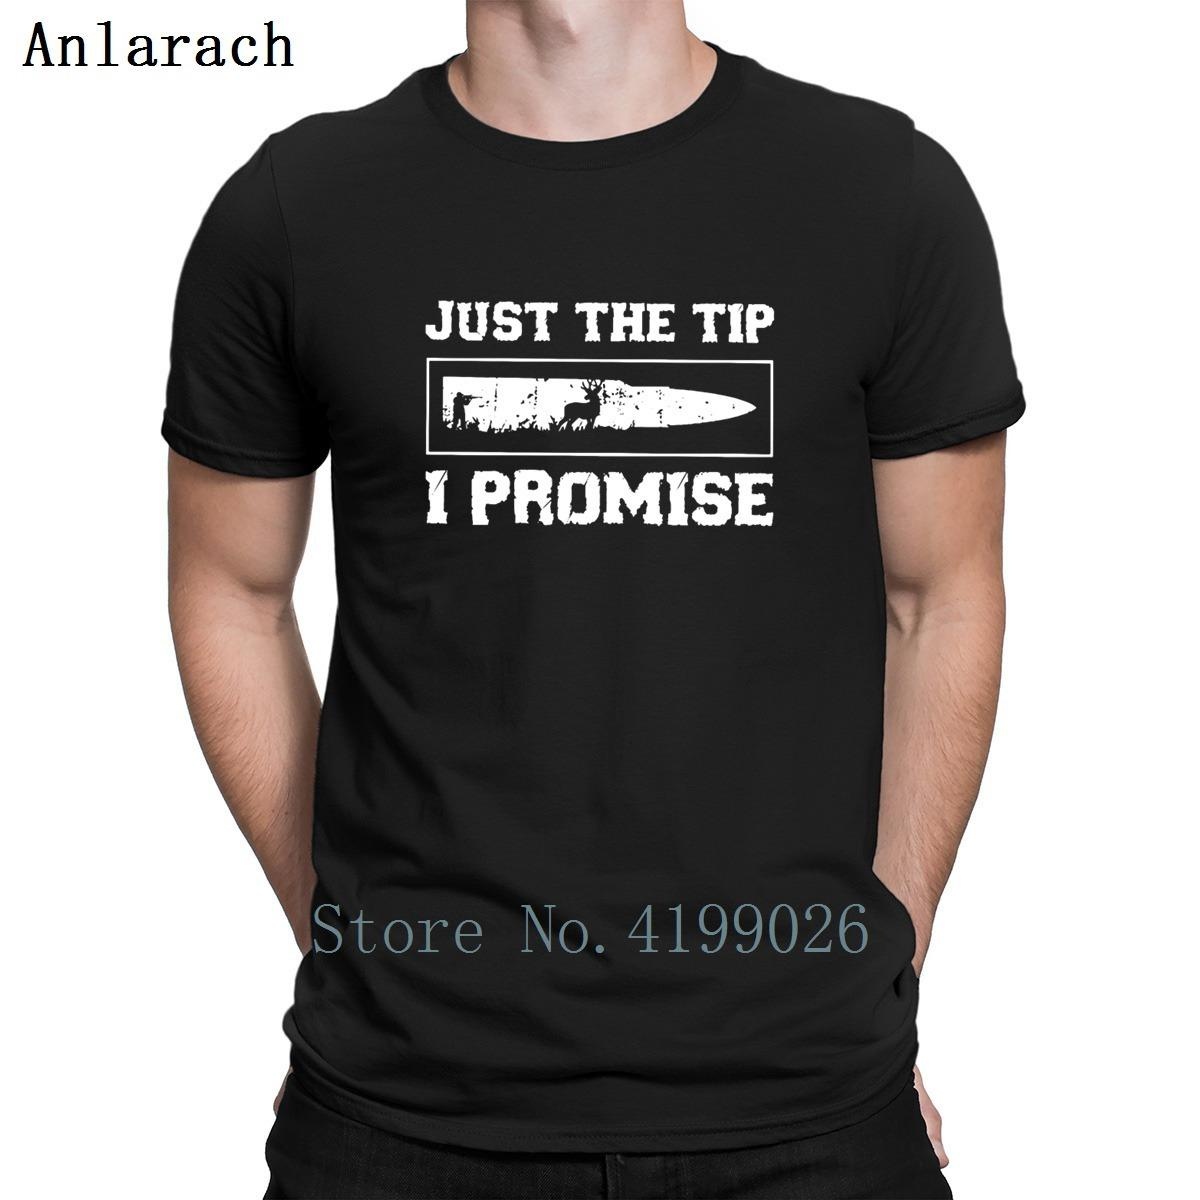 c84acd4d7 Just The Tip I Promise T Shirt Solid Color New Arrival Top Quality Custom T  Shirt For Men Cotton Normal Stylish Summer Style Ordering T Shirts Rude T  Shirt ...